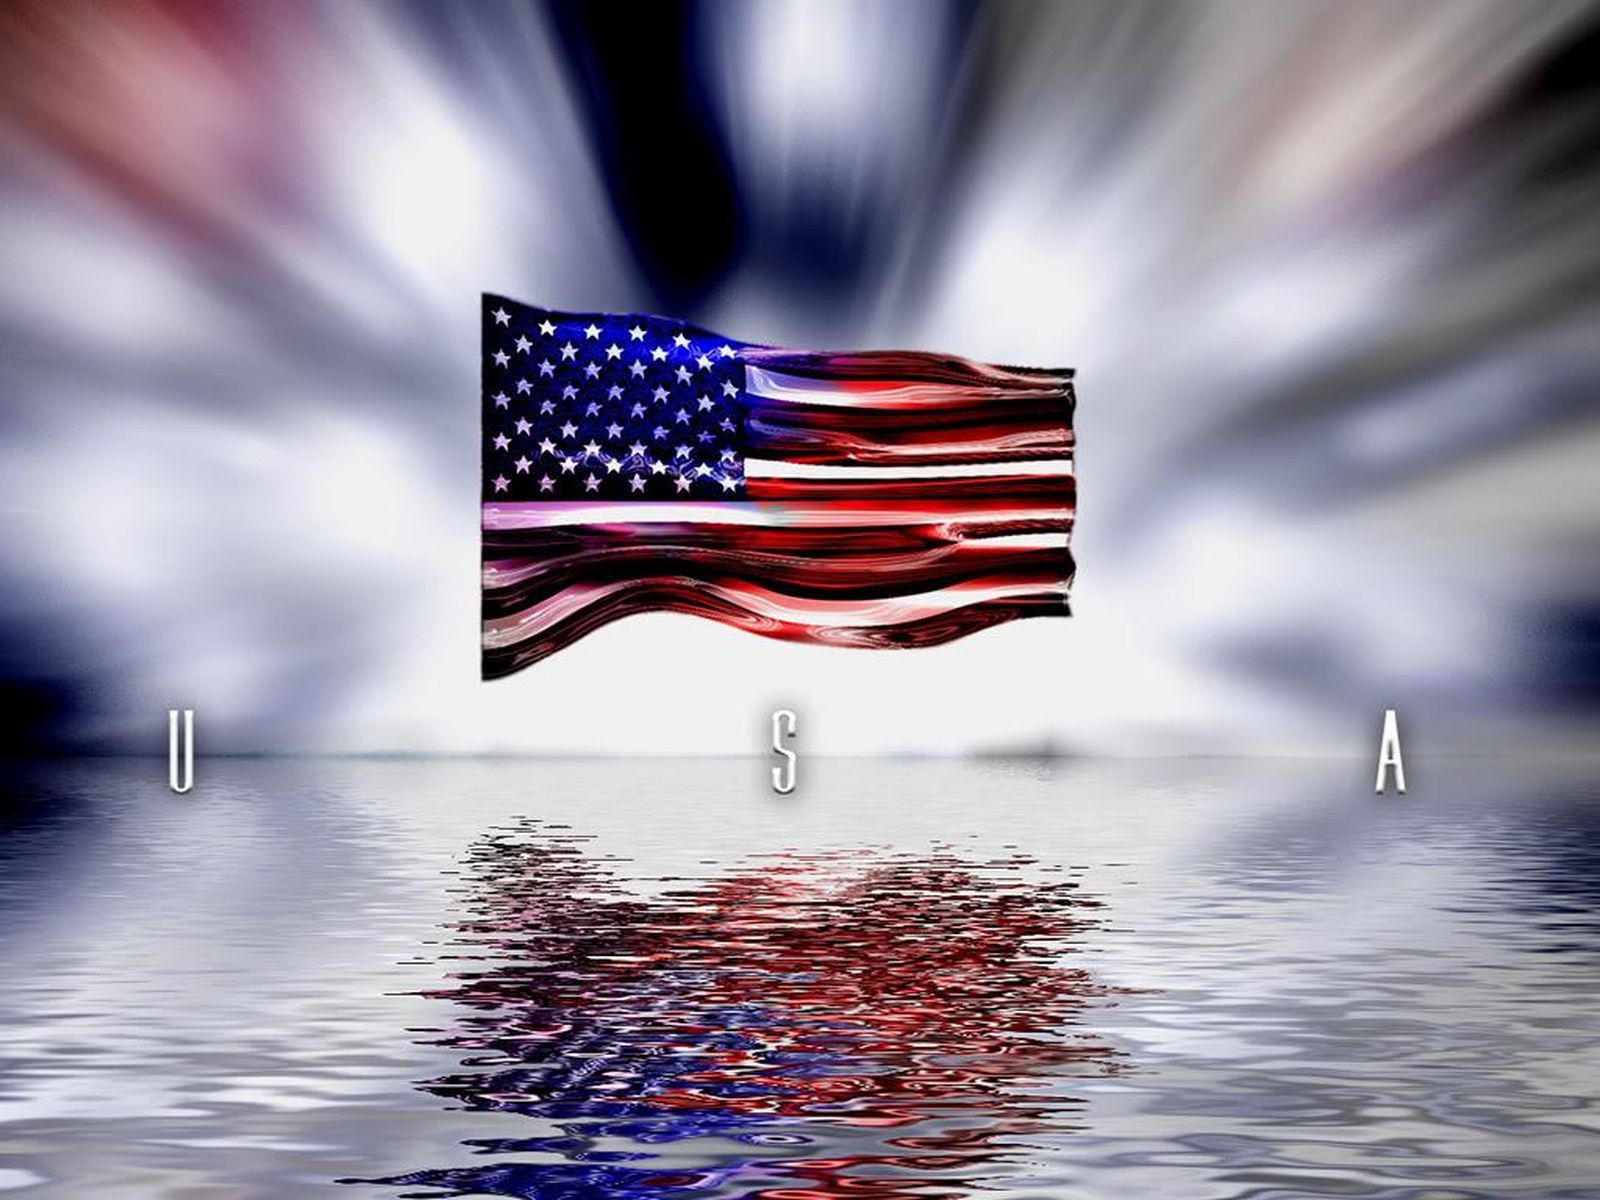 United States Navy Wallpapers Usa United States Of America Flag Wallpaper Background Image Memorial Day Flag American Flag Wallpaper Patriotic Wallpaper